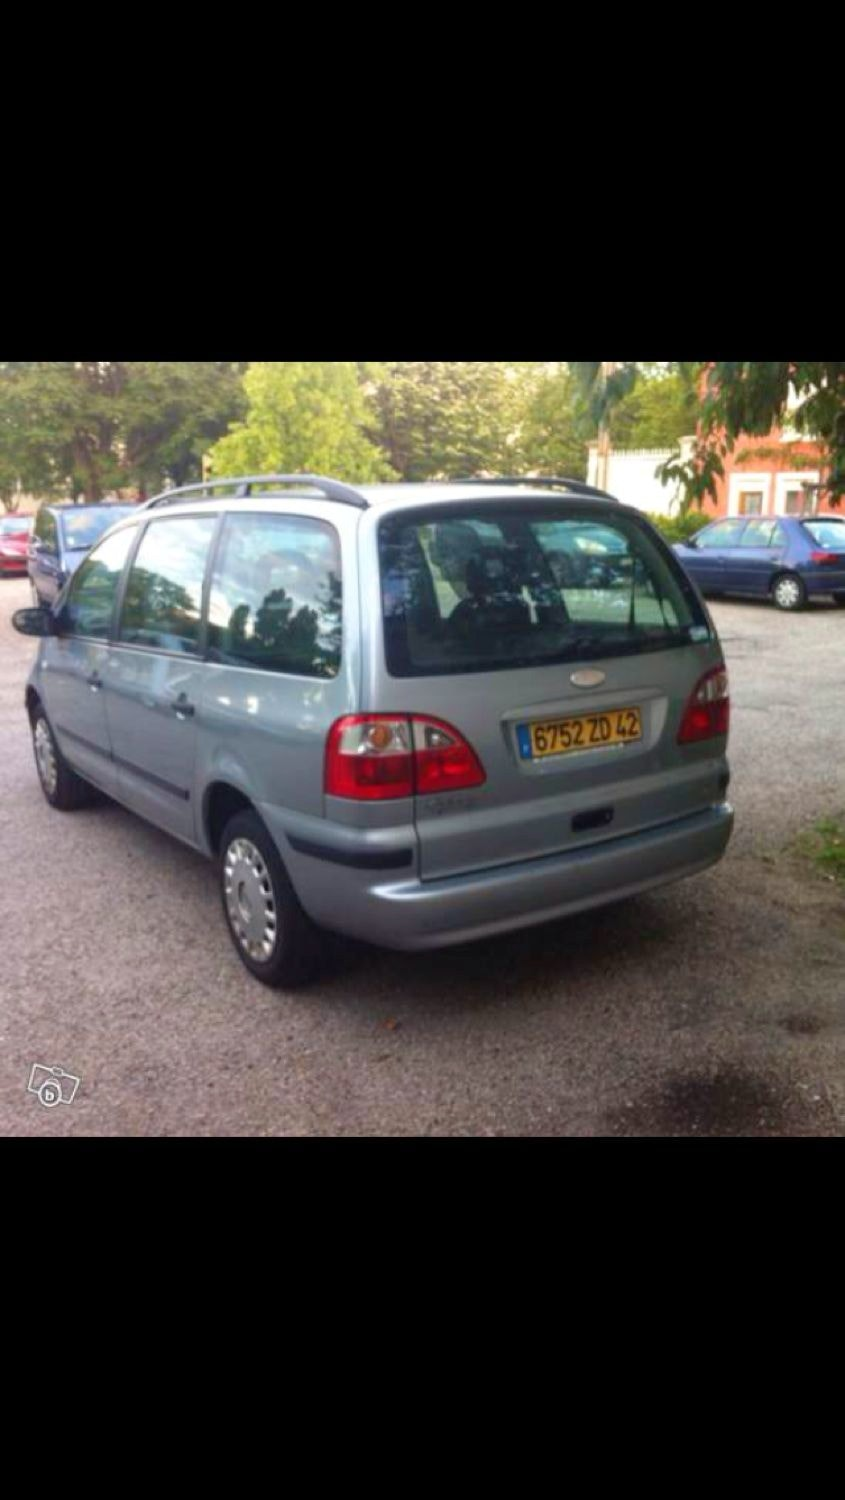 Ford Galaxy 2 monospace 7 places, 2004, Diesel, 7 places